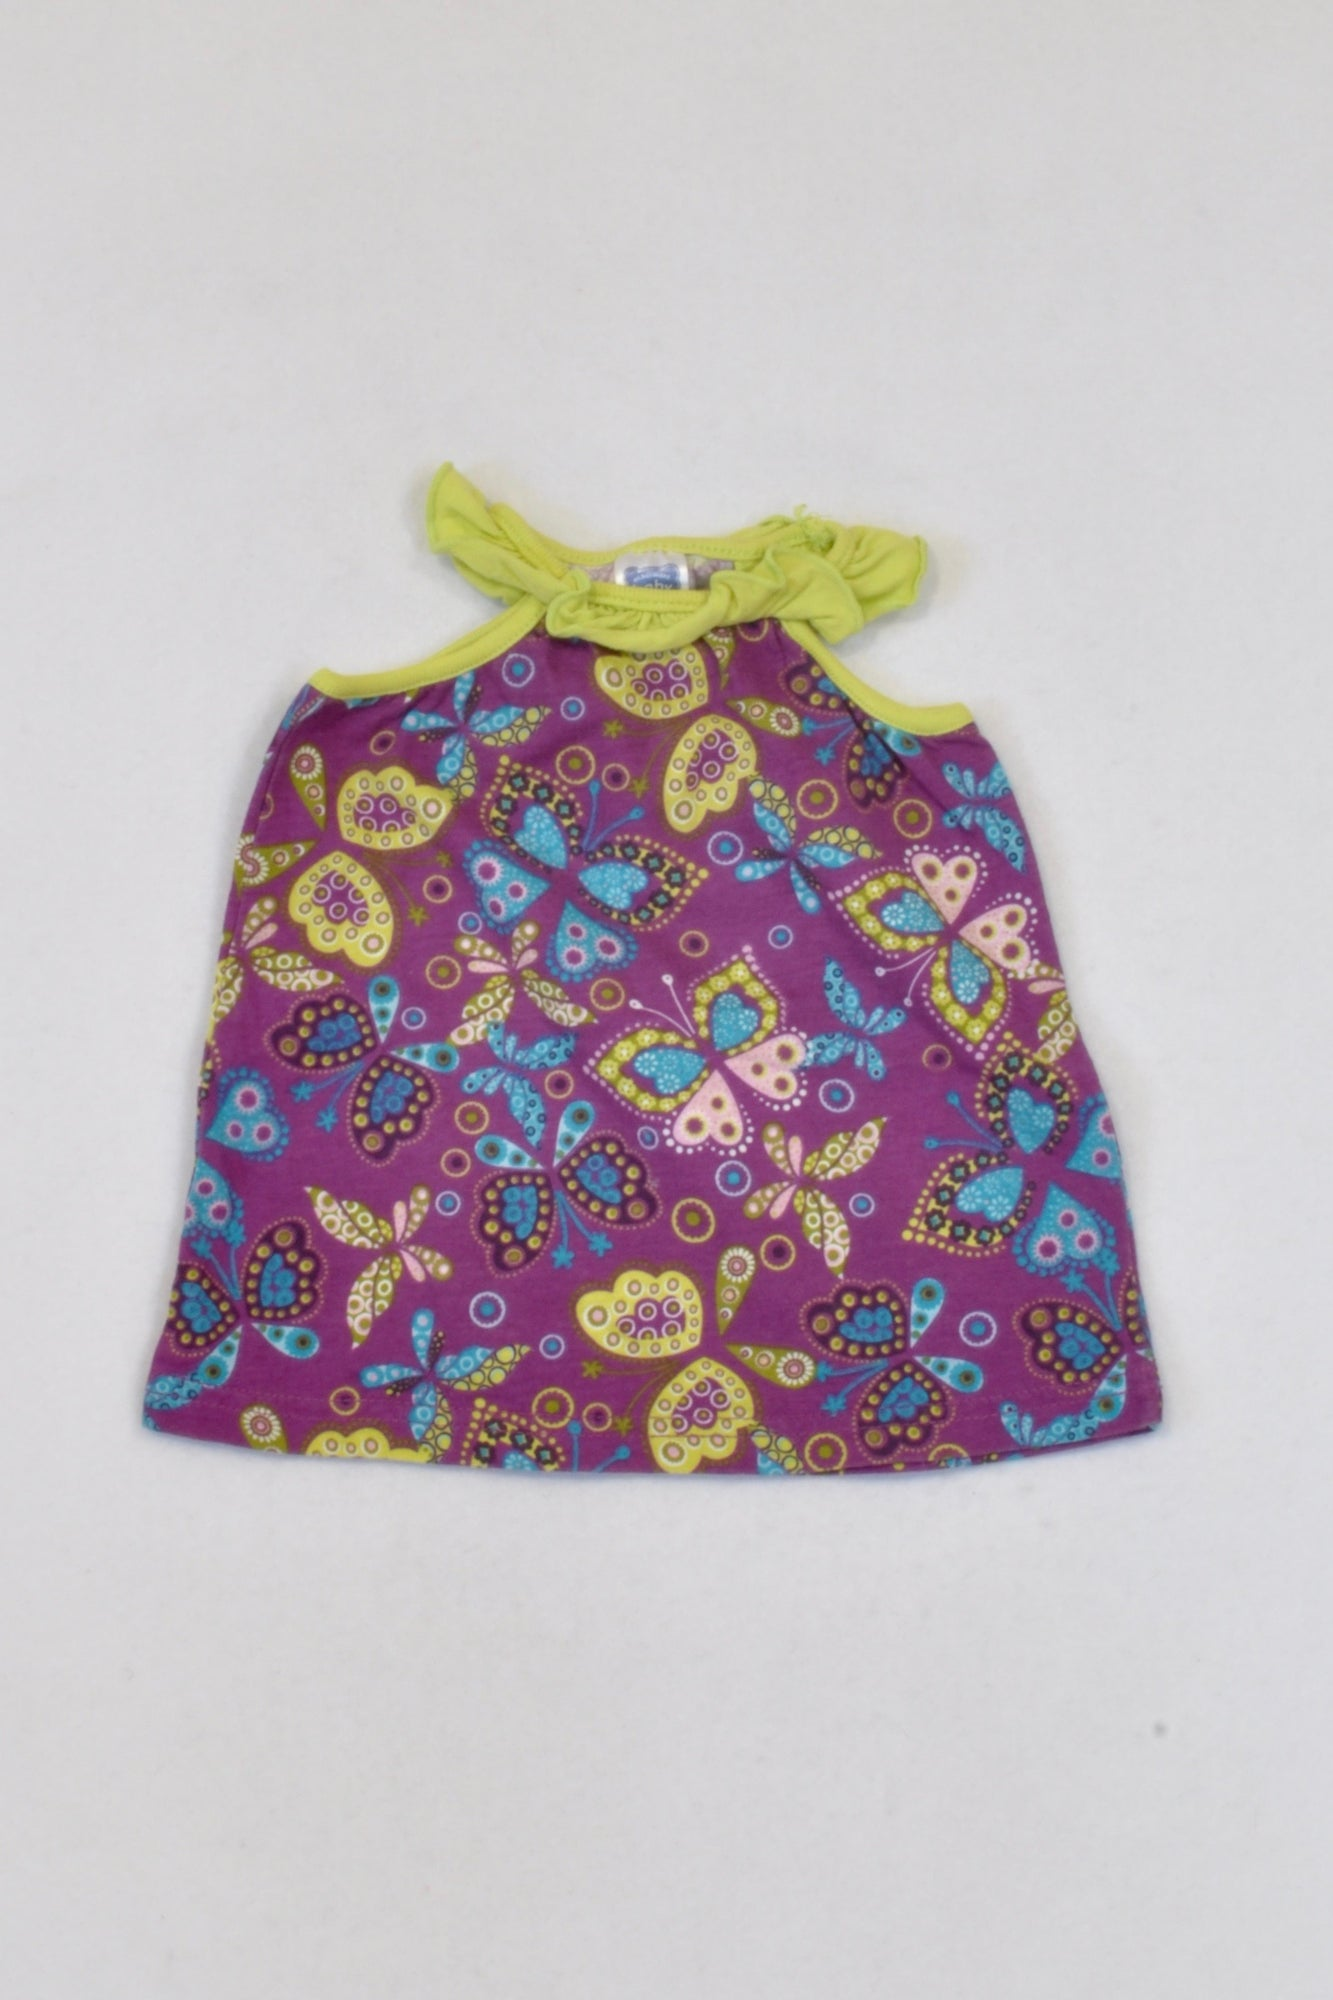 Ackermans Purple Paisley Butterfly Tank Top Girls 3-6 months